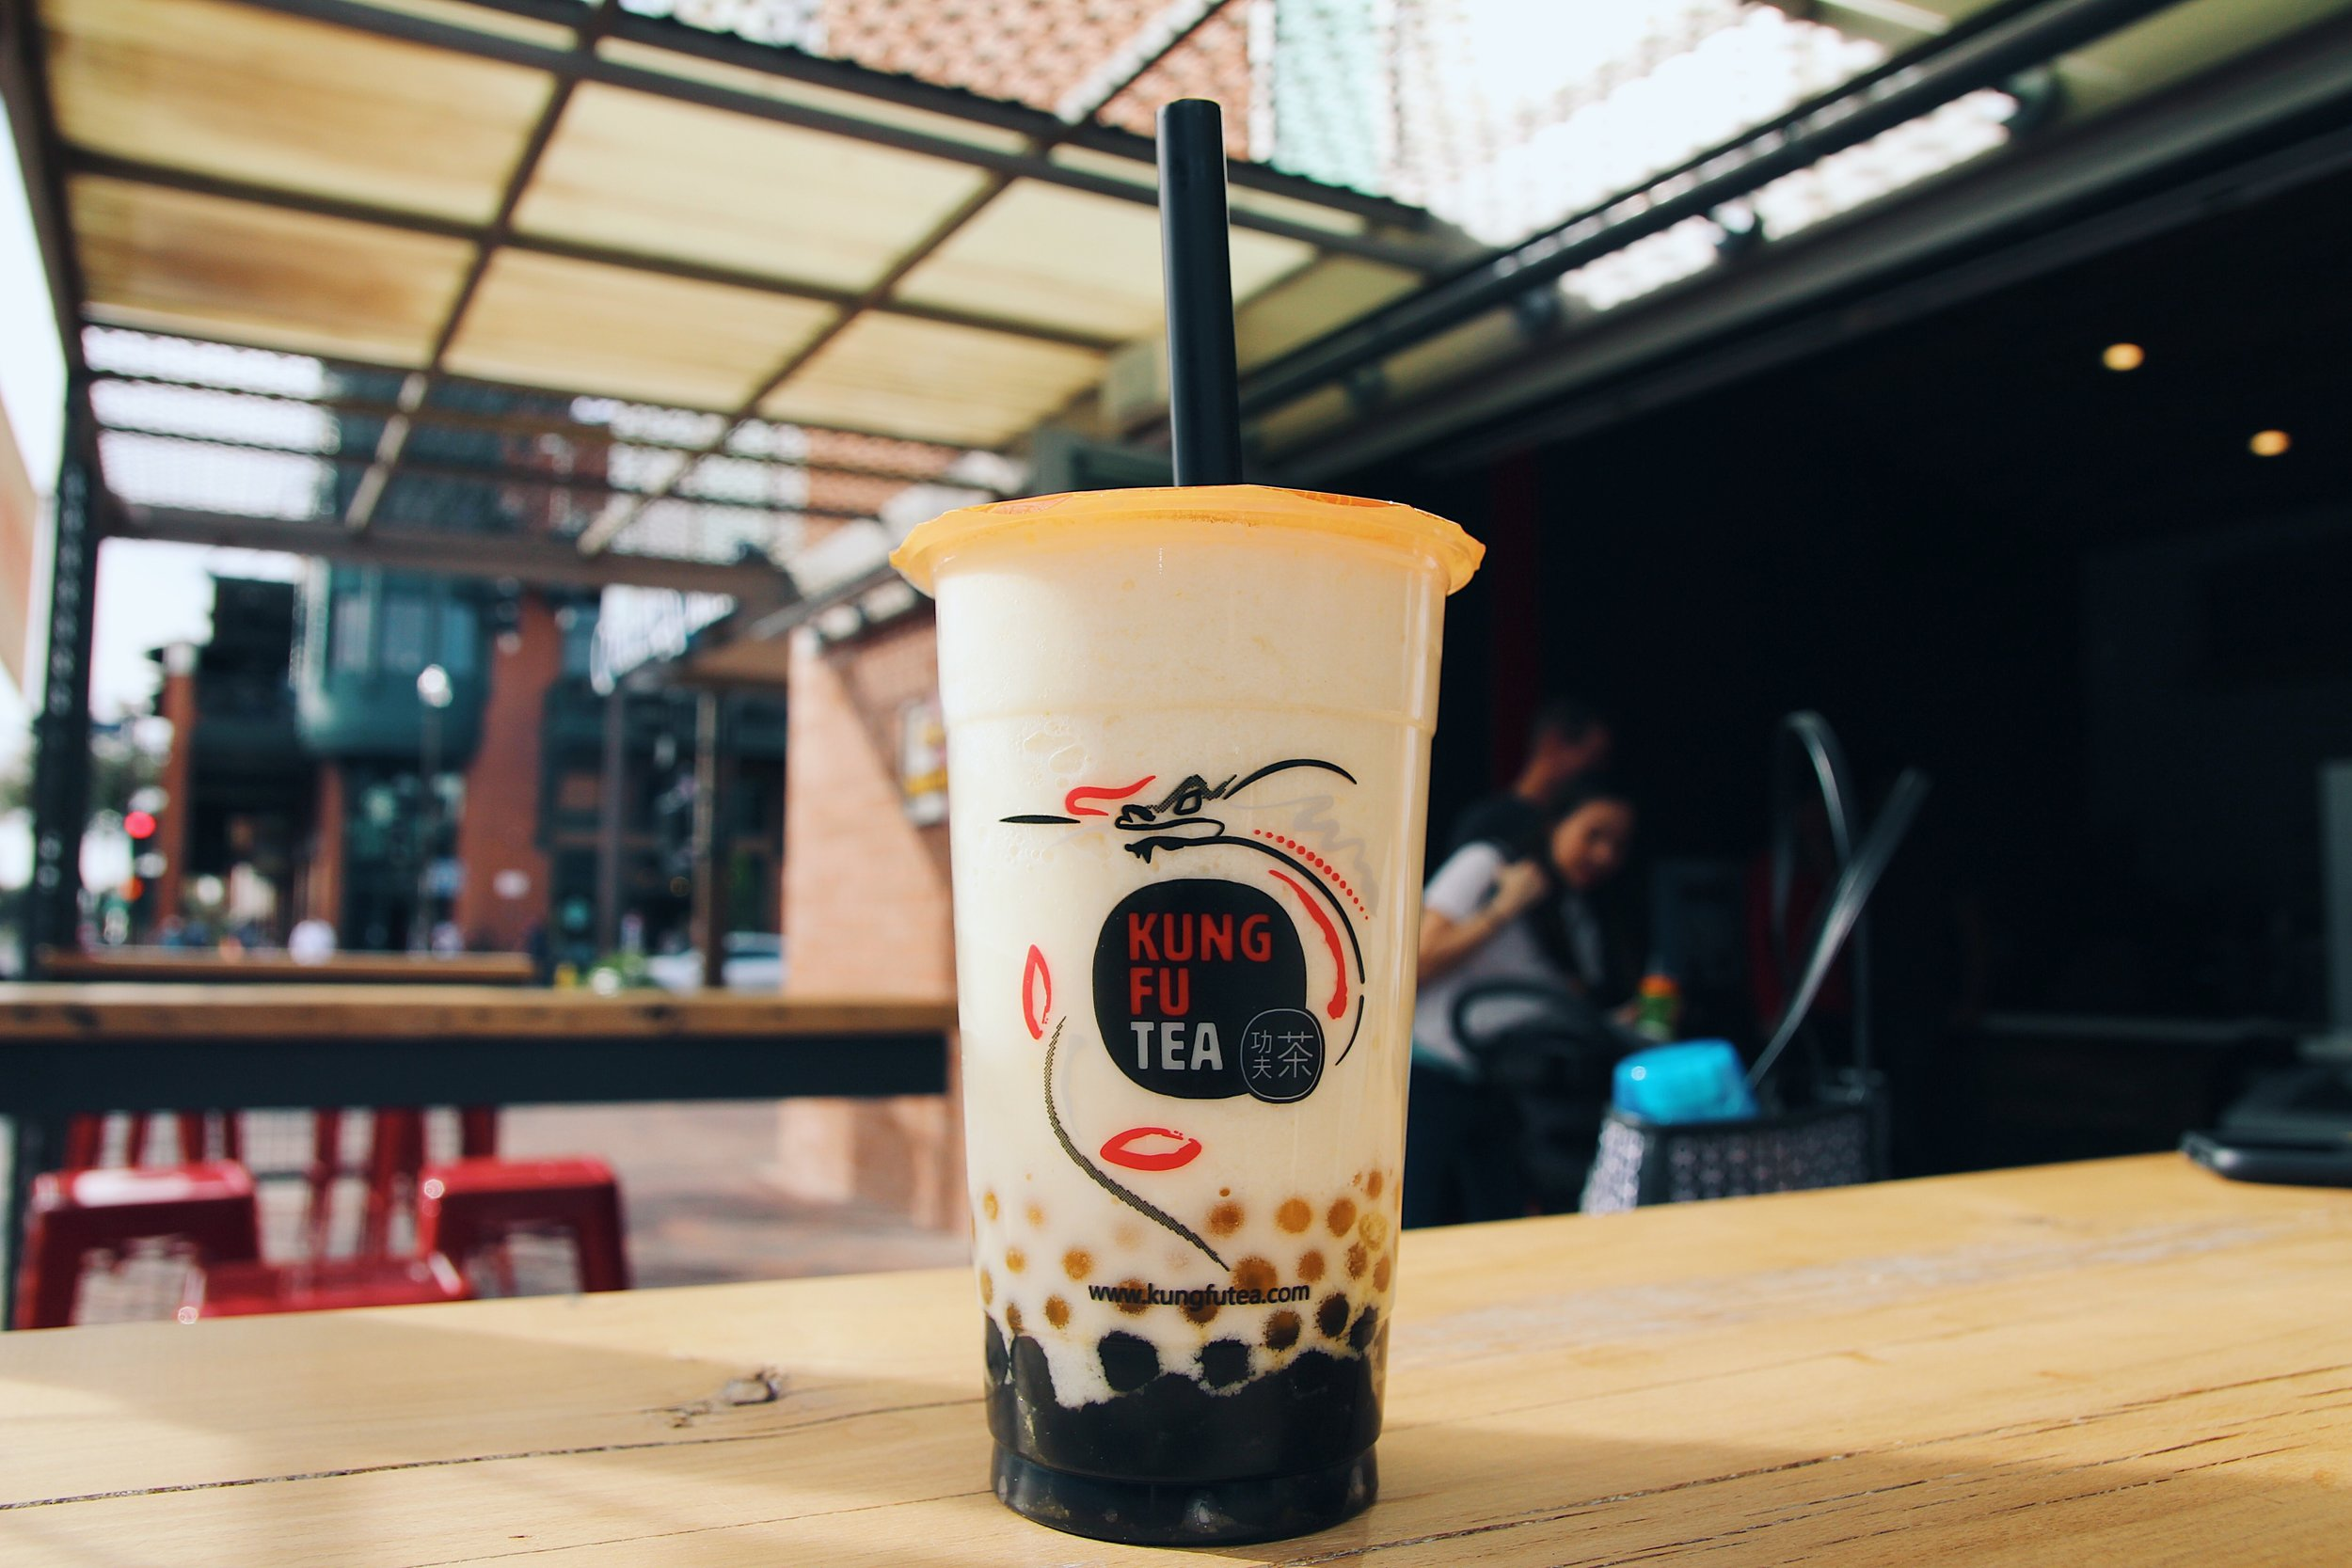 refreshing boba made by the friendliest staff, ever -